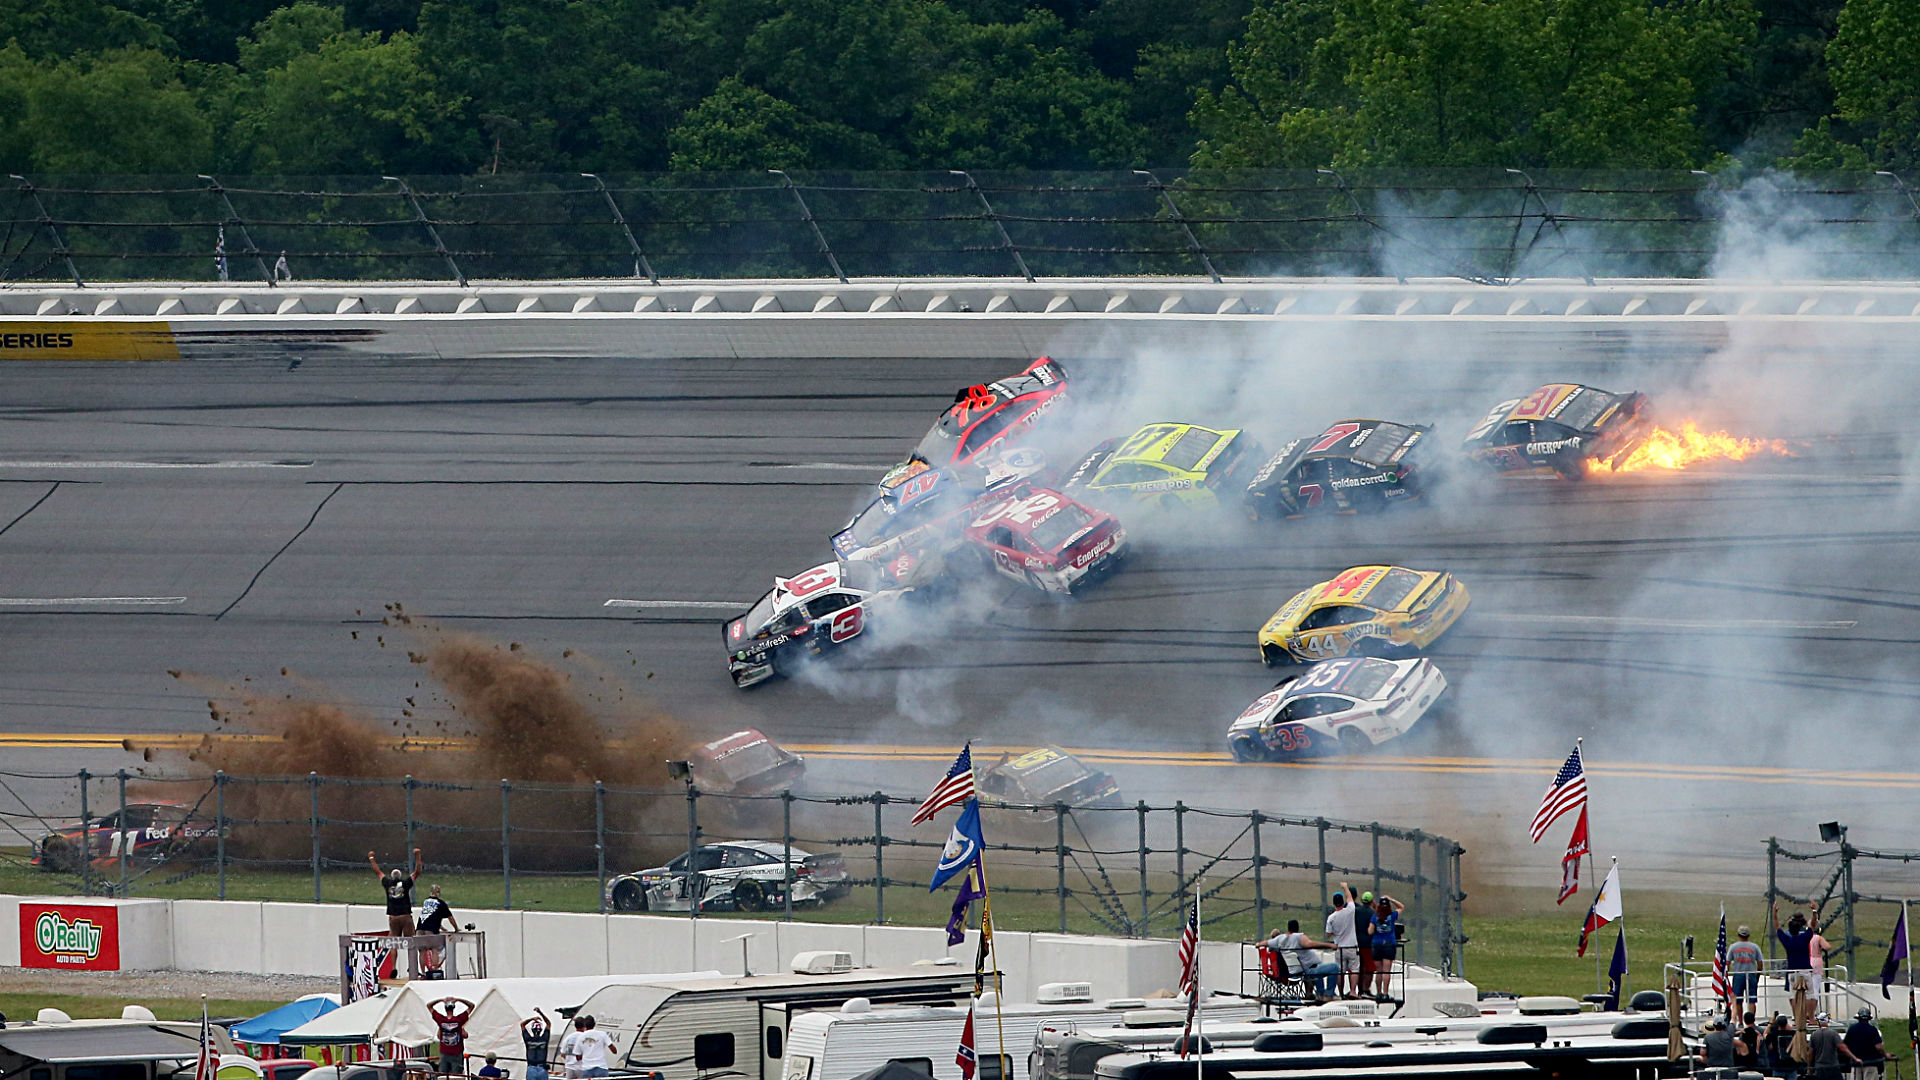 Watch: The 'Big One' collects Busch, Truex, brings out red flag at Talladega